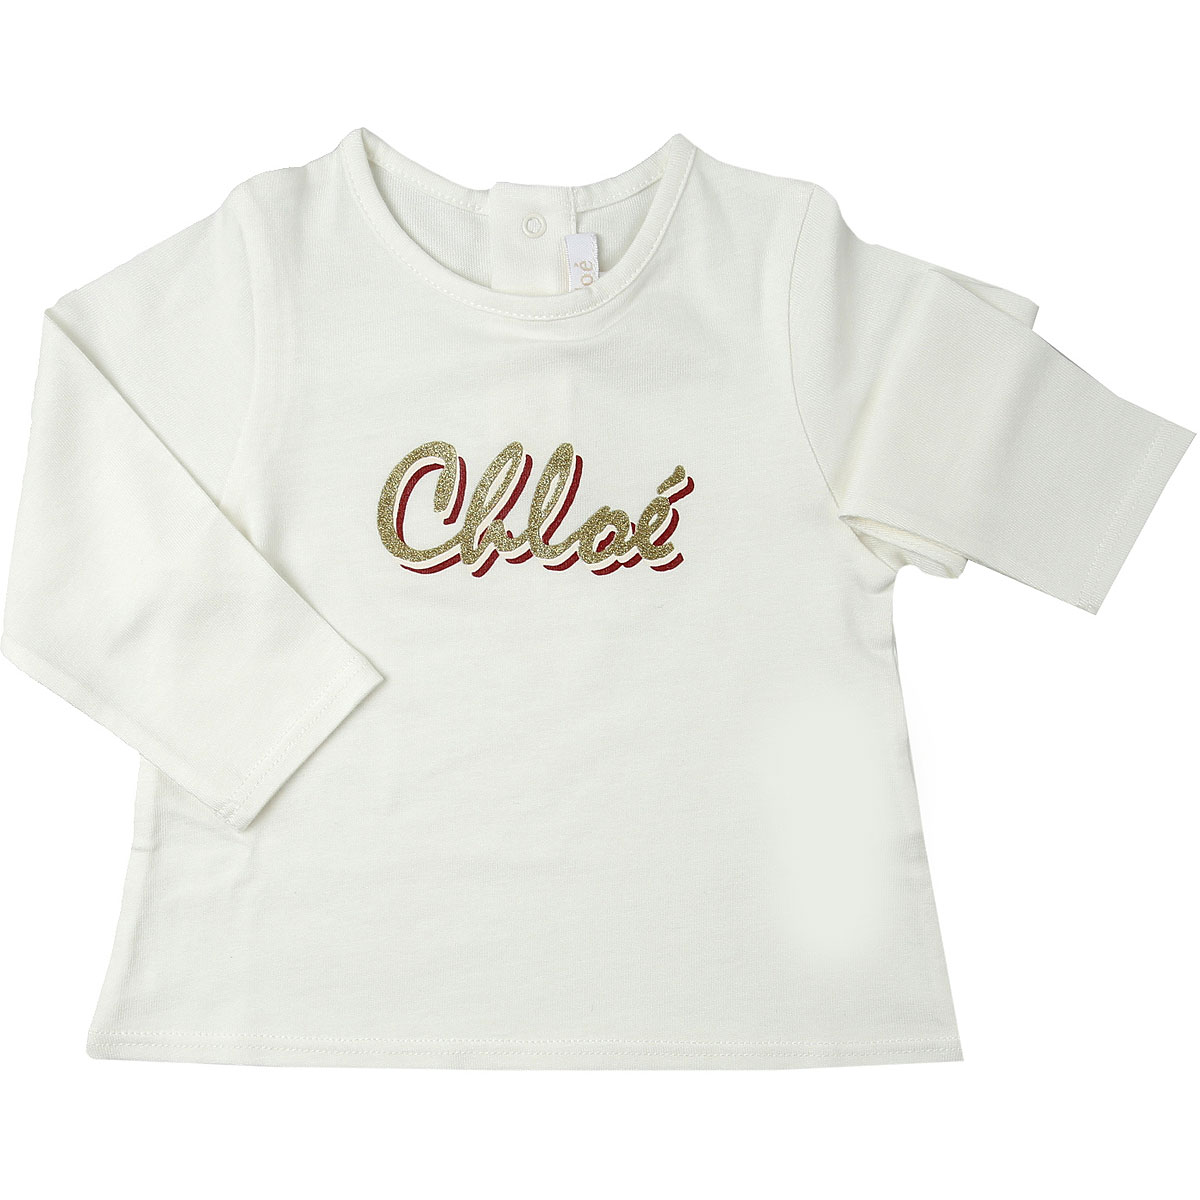 Chloe Baby T-Shirt for Girls On Sale, White, Cotton, 2019, 18M 2Y 3Y 6M 9M